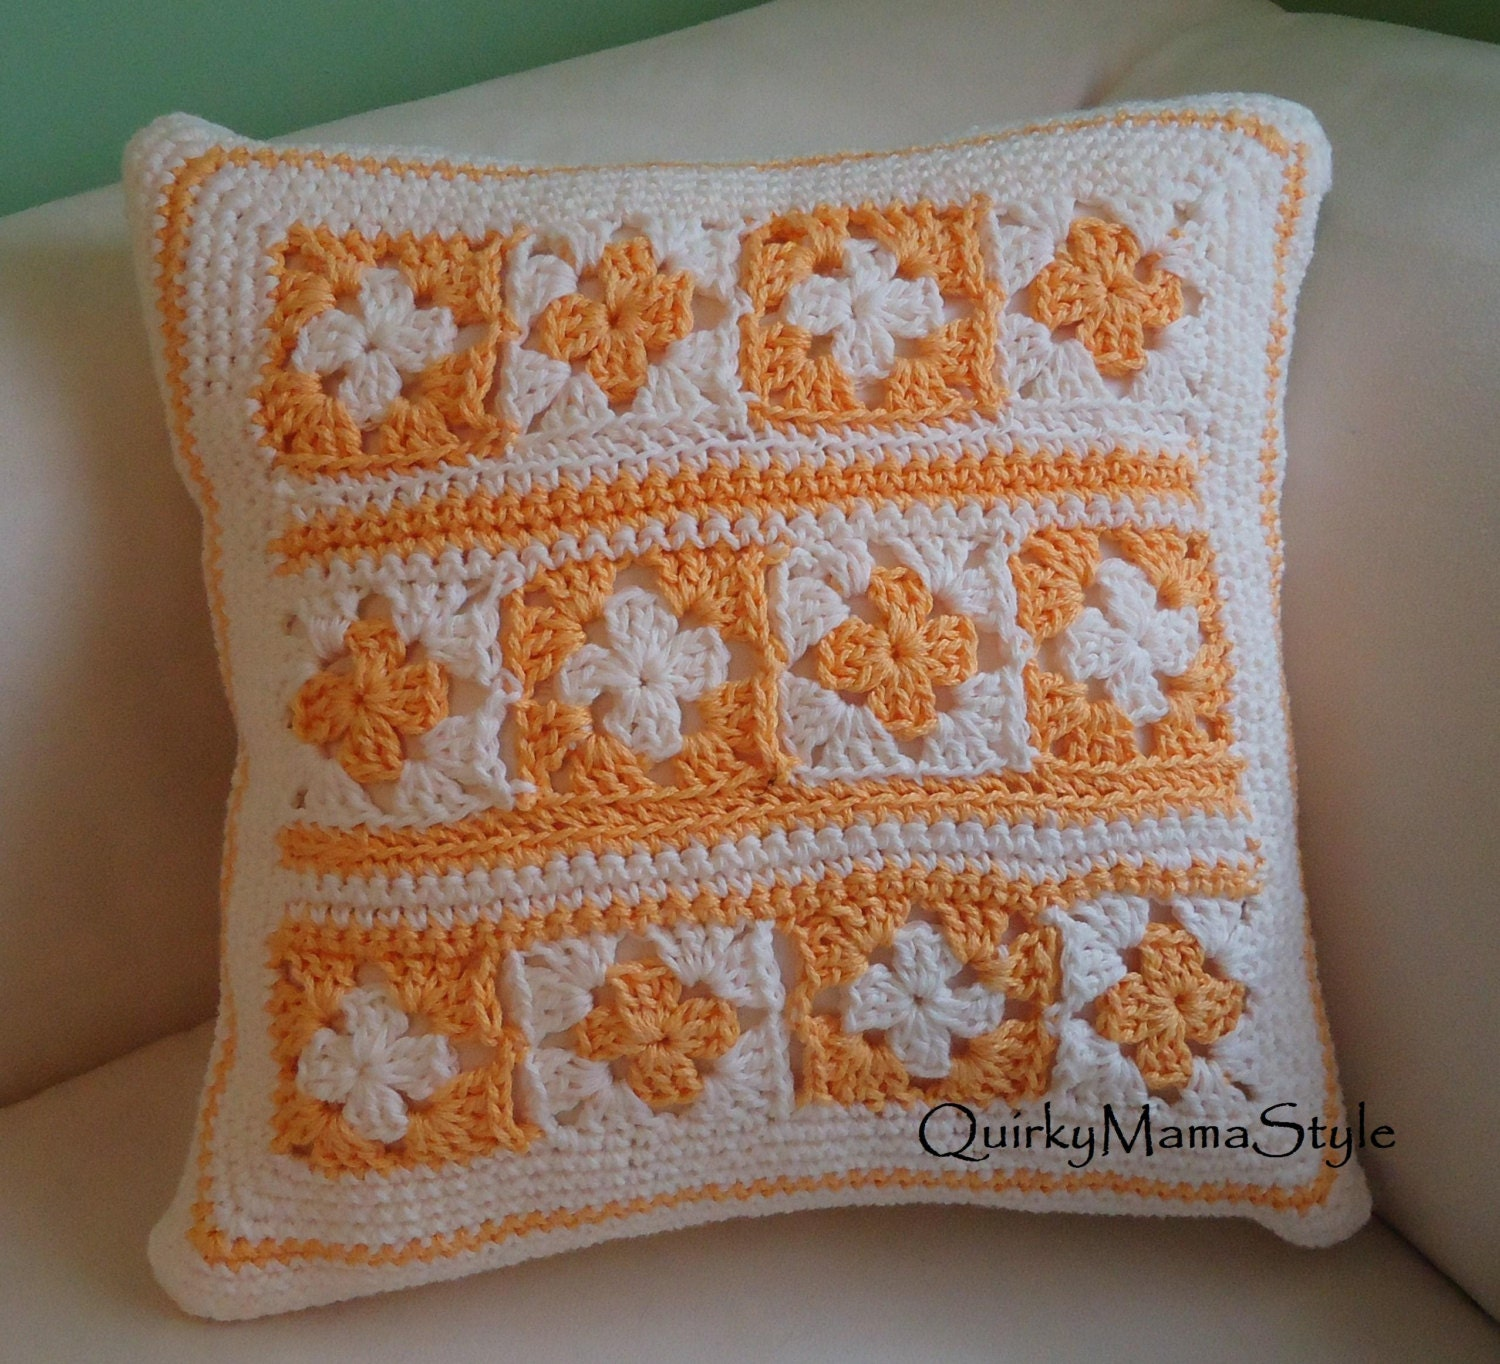 Crochet Pattern Granny Square Pillows : Pansy Granny Square Crochet Pillow Cover by QuirkyMamaStyle